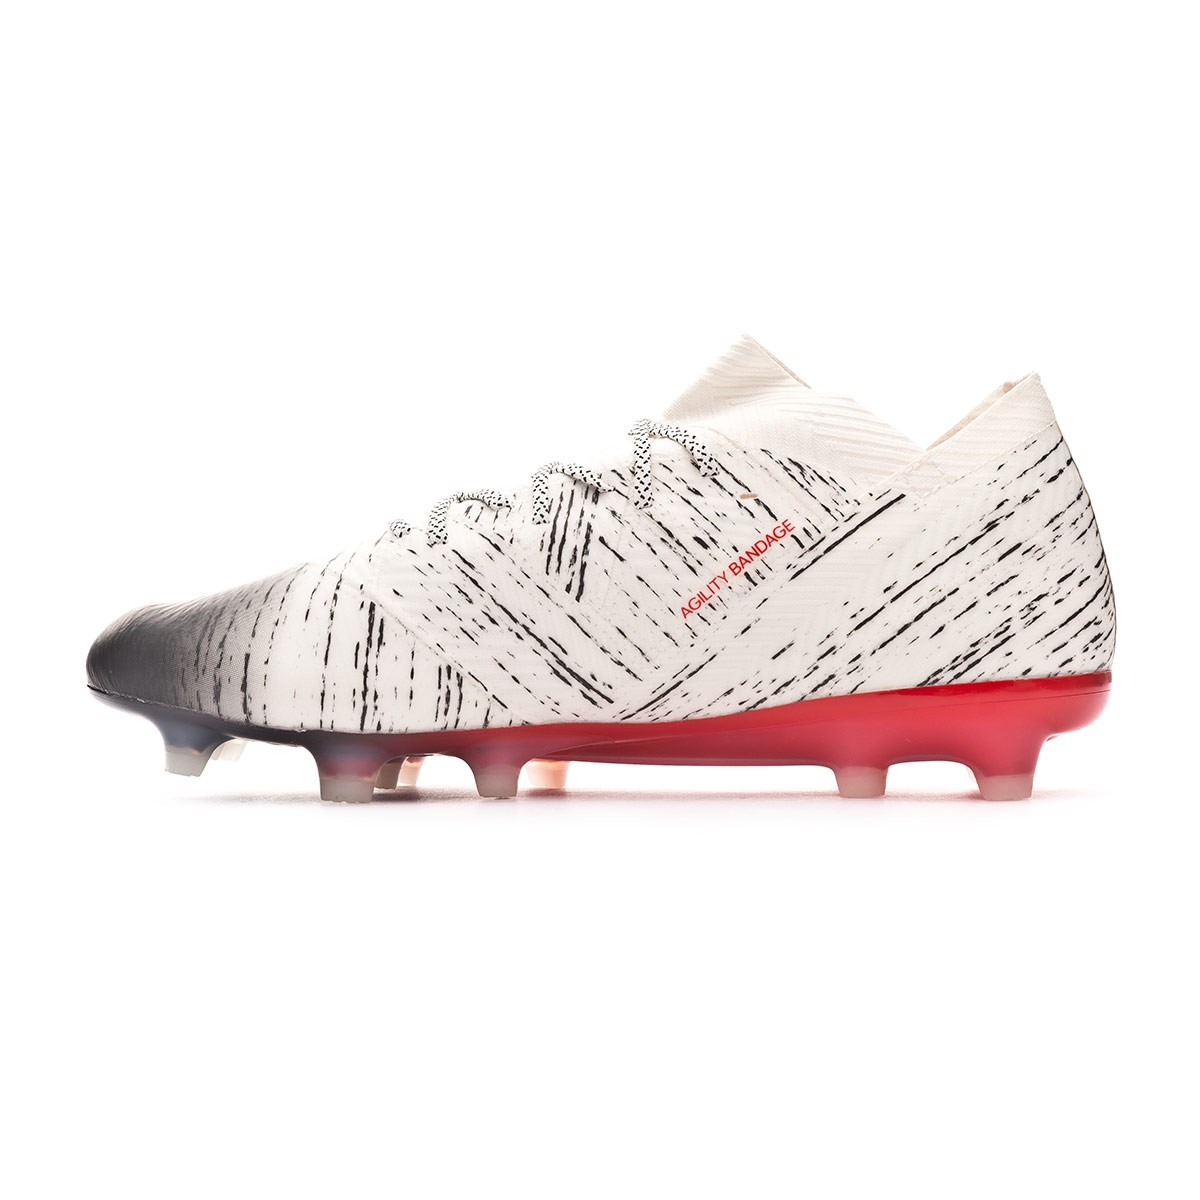 22b72acbe10 Chuteira adidas Nemeziz 18.1 FG Off white-Core black-Active red - Loja de  futebol Fútbol Emotion